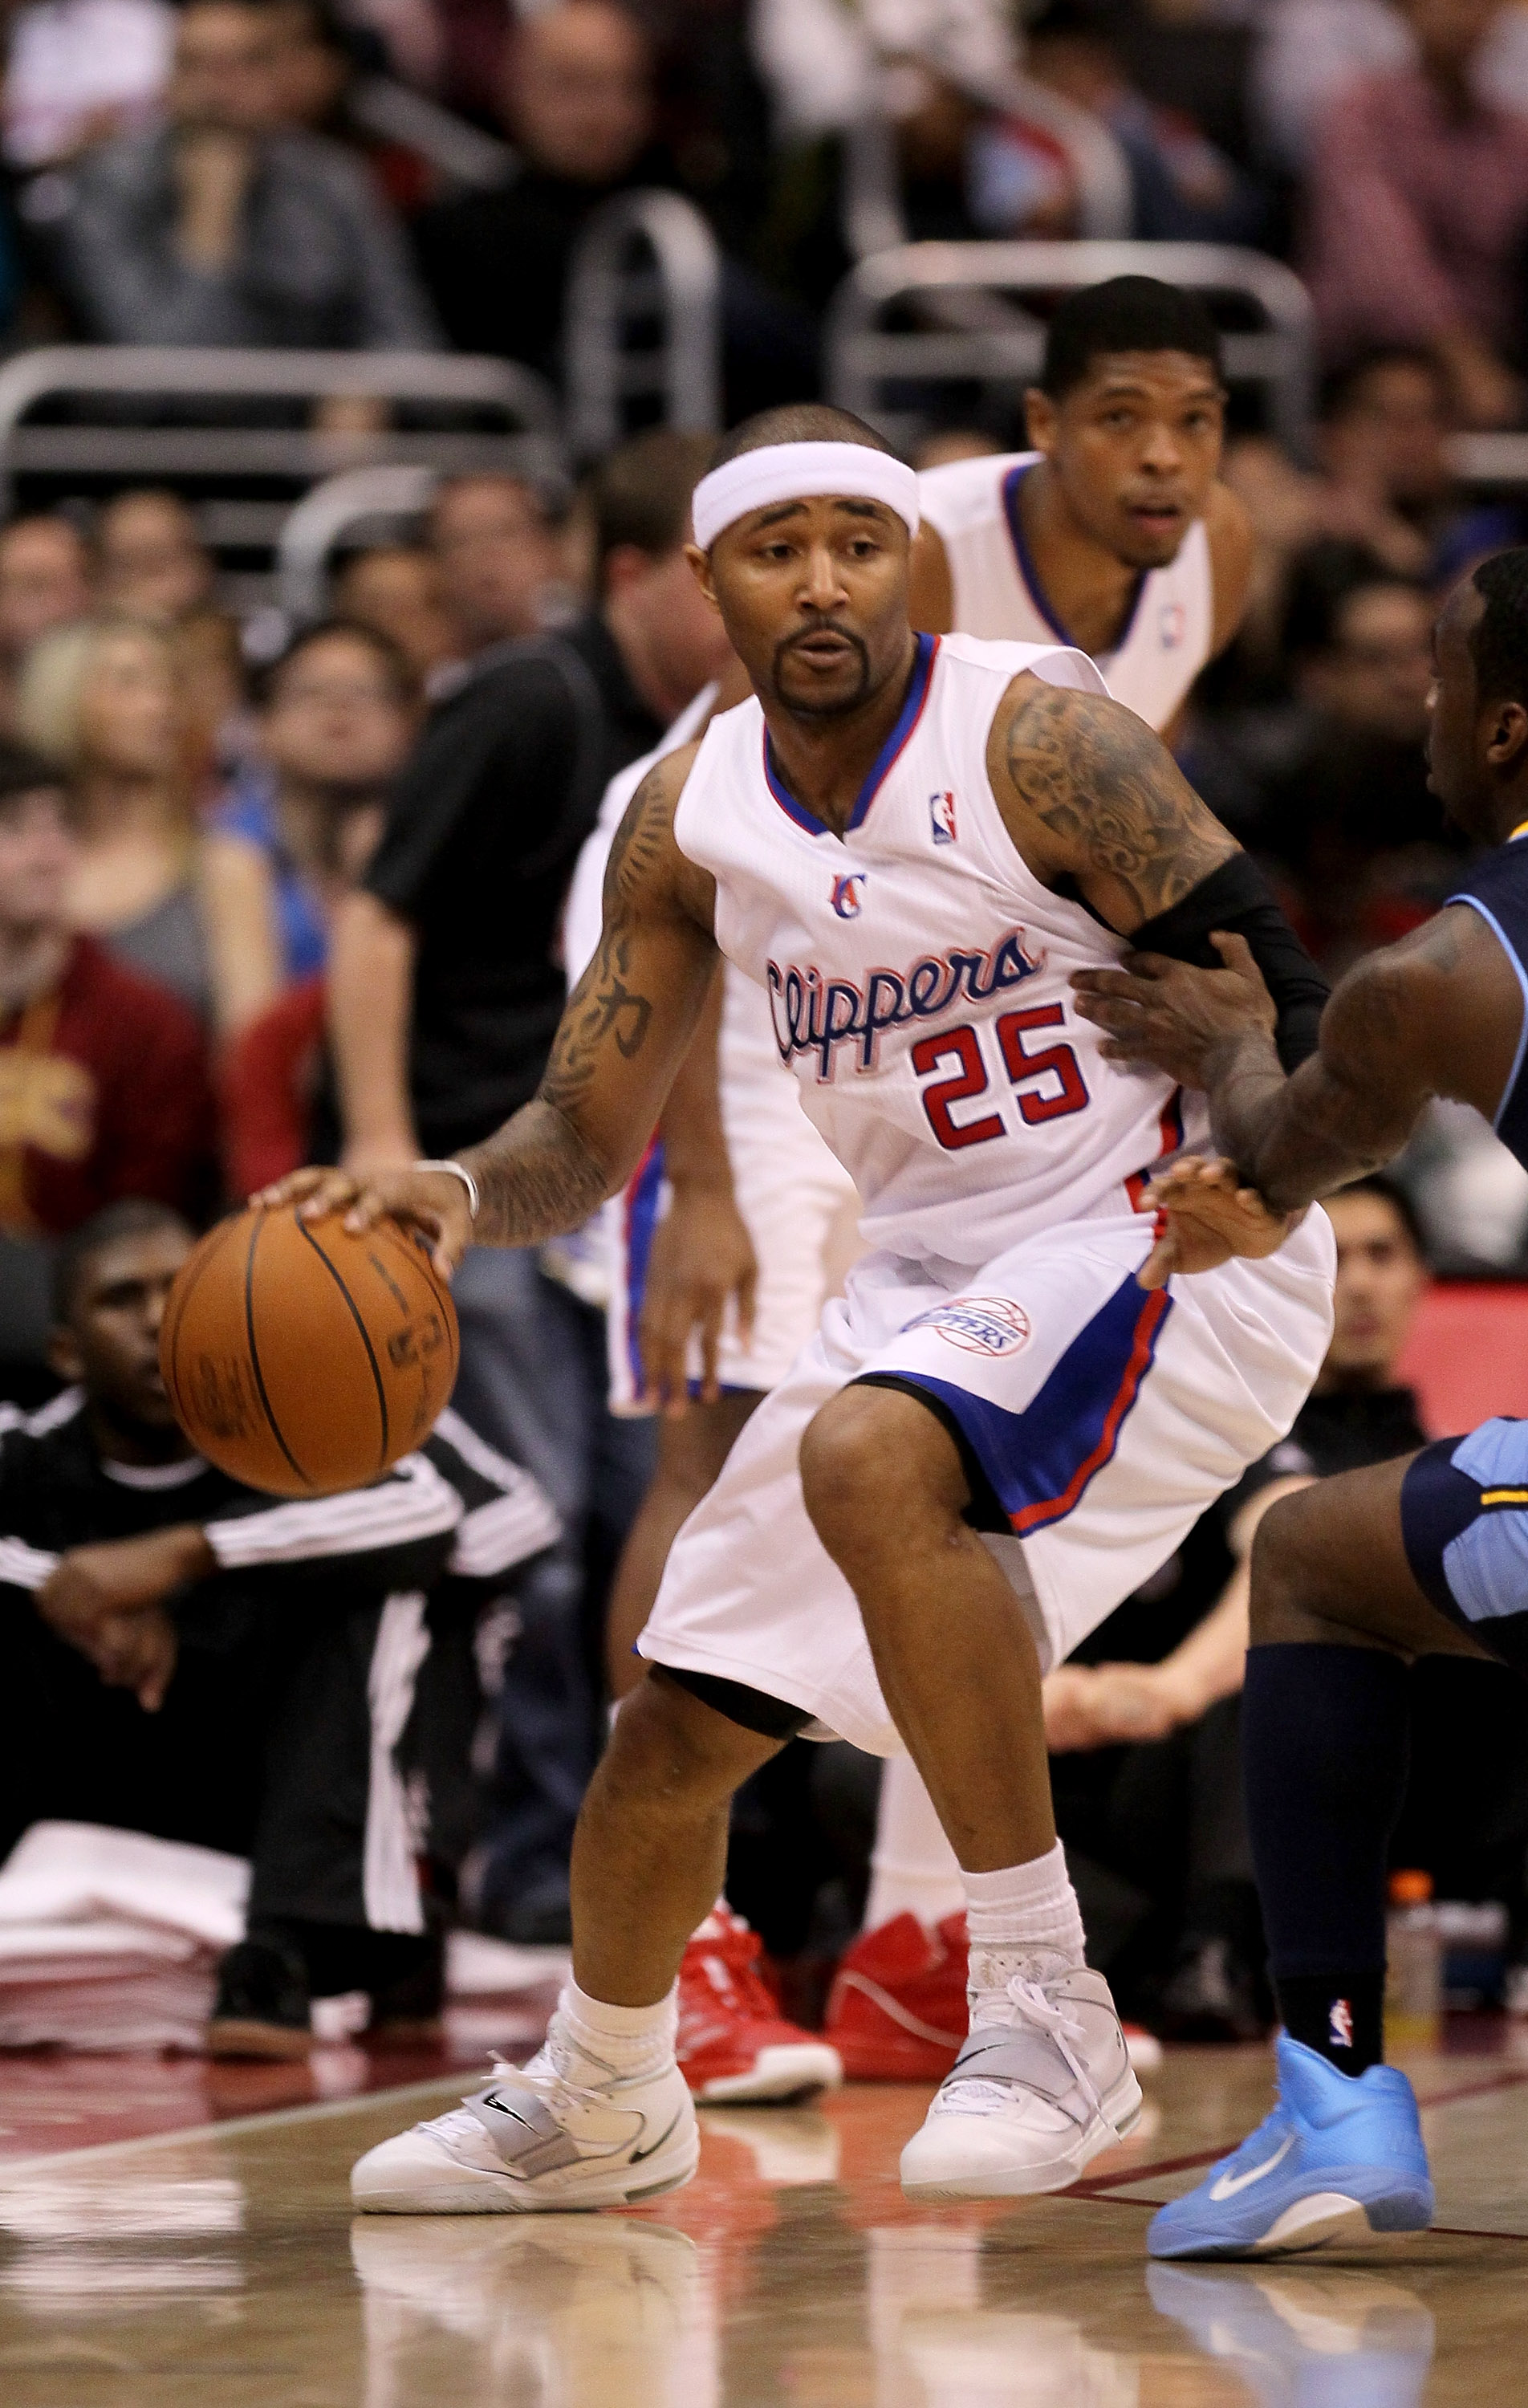 LOS ANGELES, CA - MARCH 5:  Mo Williams #25 of the Los Angeles Clippers controls the ball against the Denver Nuggets at Staples Center on March 5, 2011 in Los Angeles, California.  The Clippers won 100-94. NOTE TO USER: User expressly acknowledges and agr